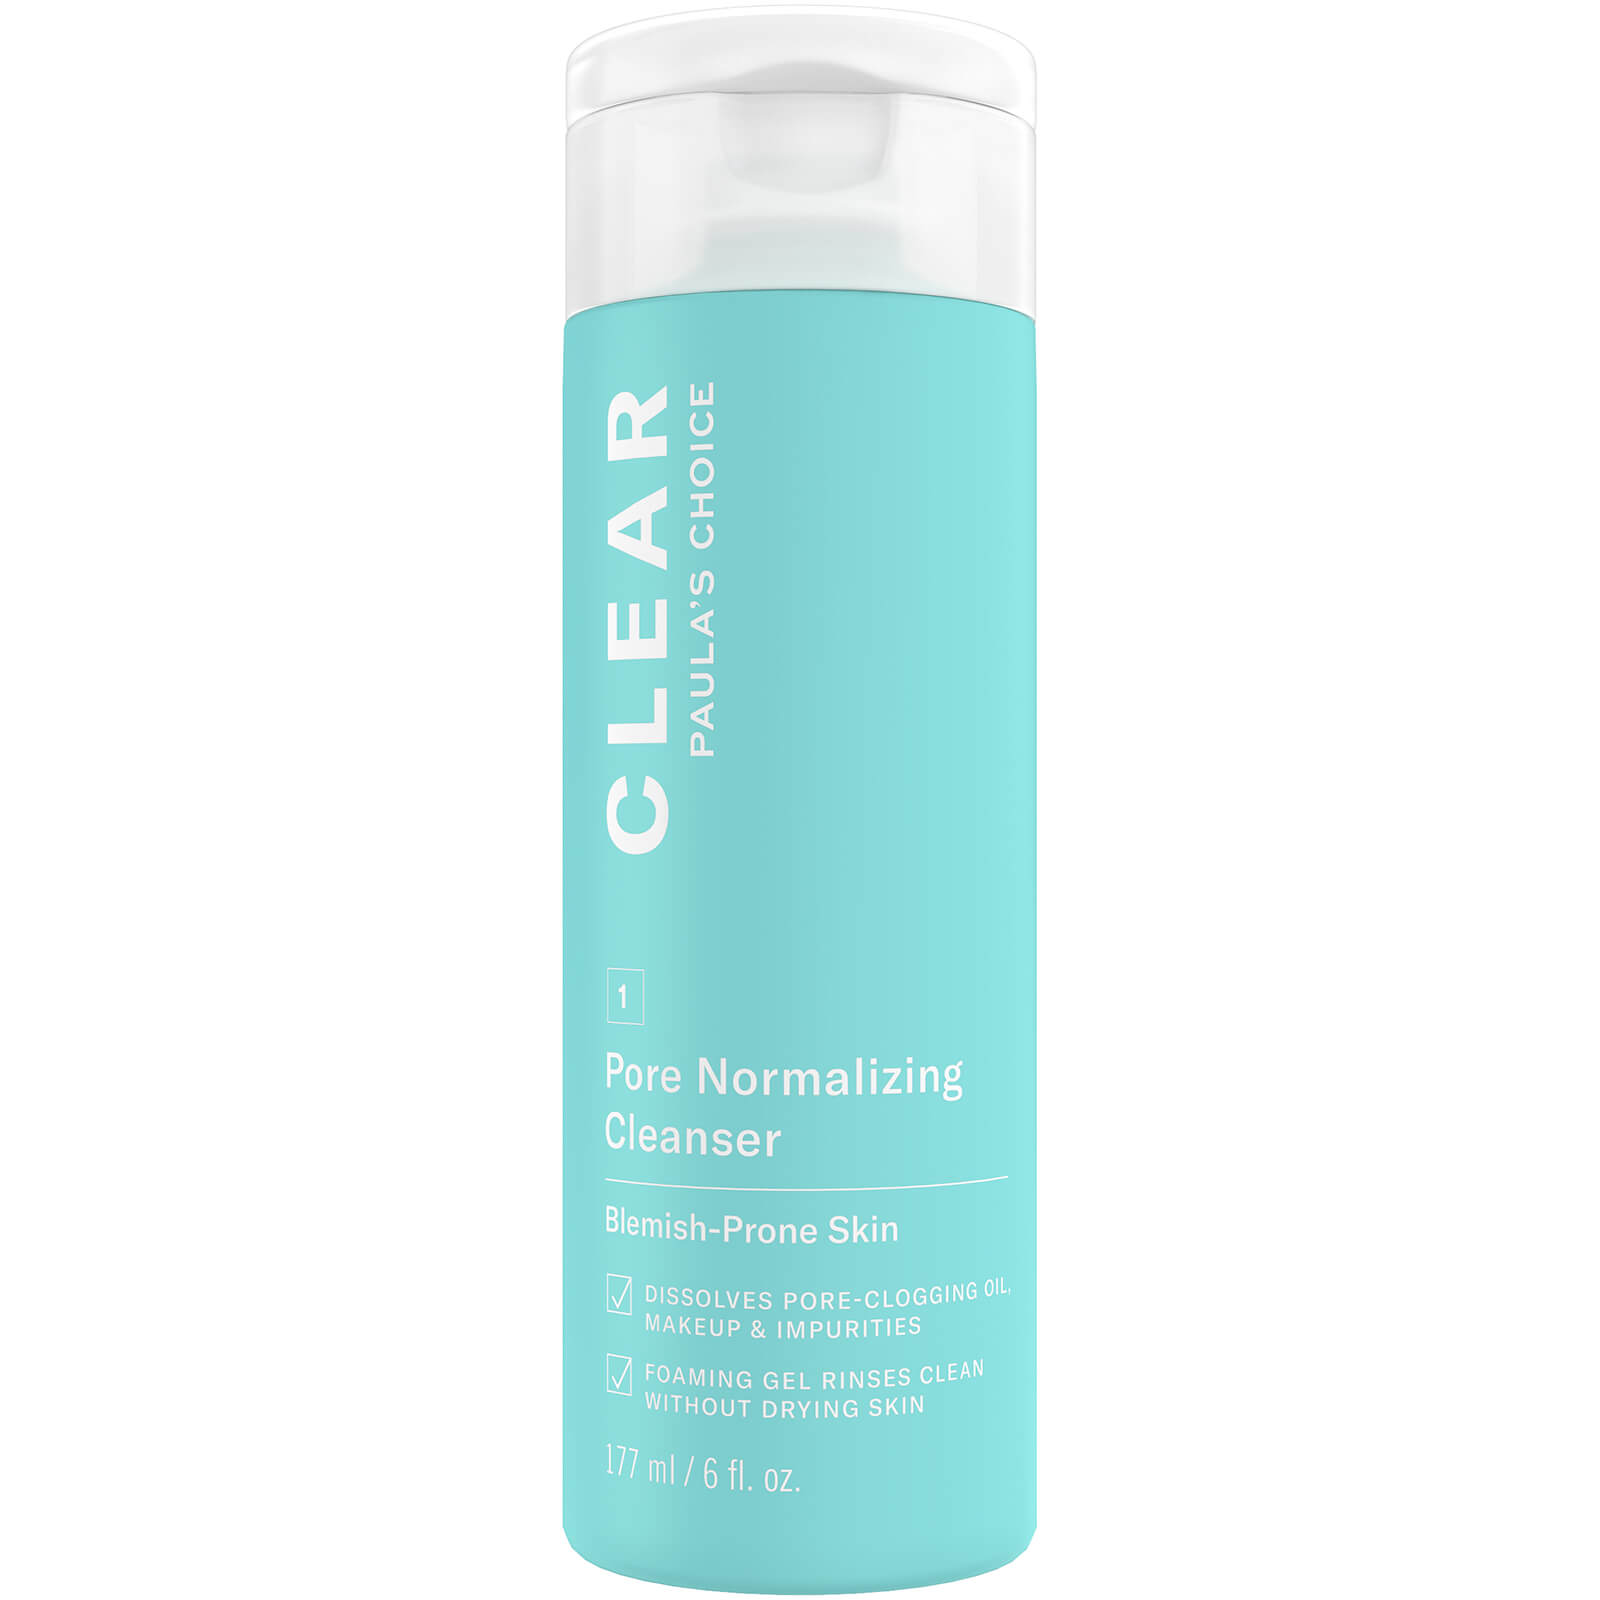 Best Face Washes For Treating And Getting Rid Of Acne Scars Paula's Choice Clear Pore Normalizing Cleanser